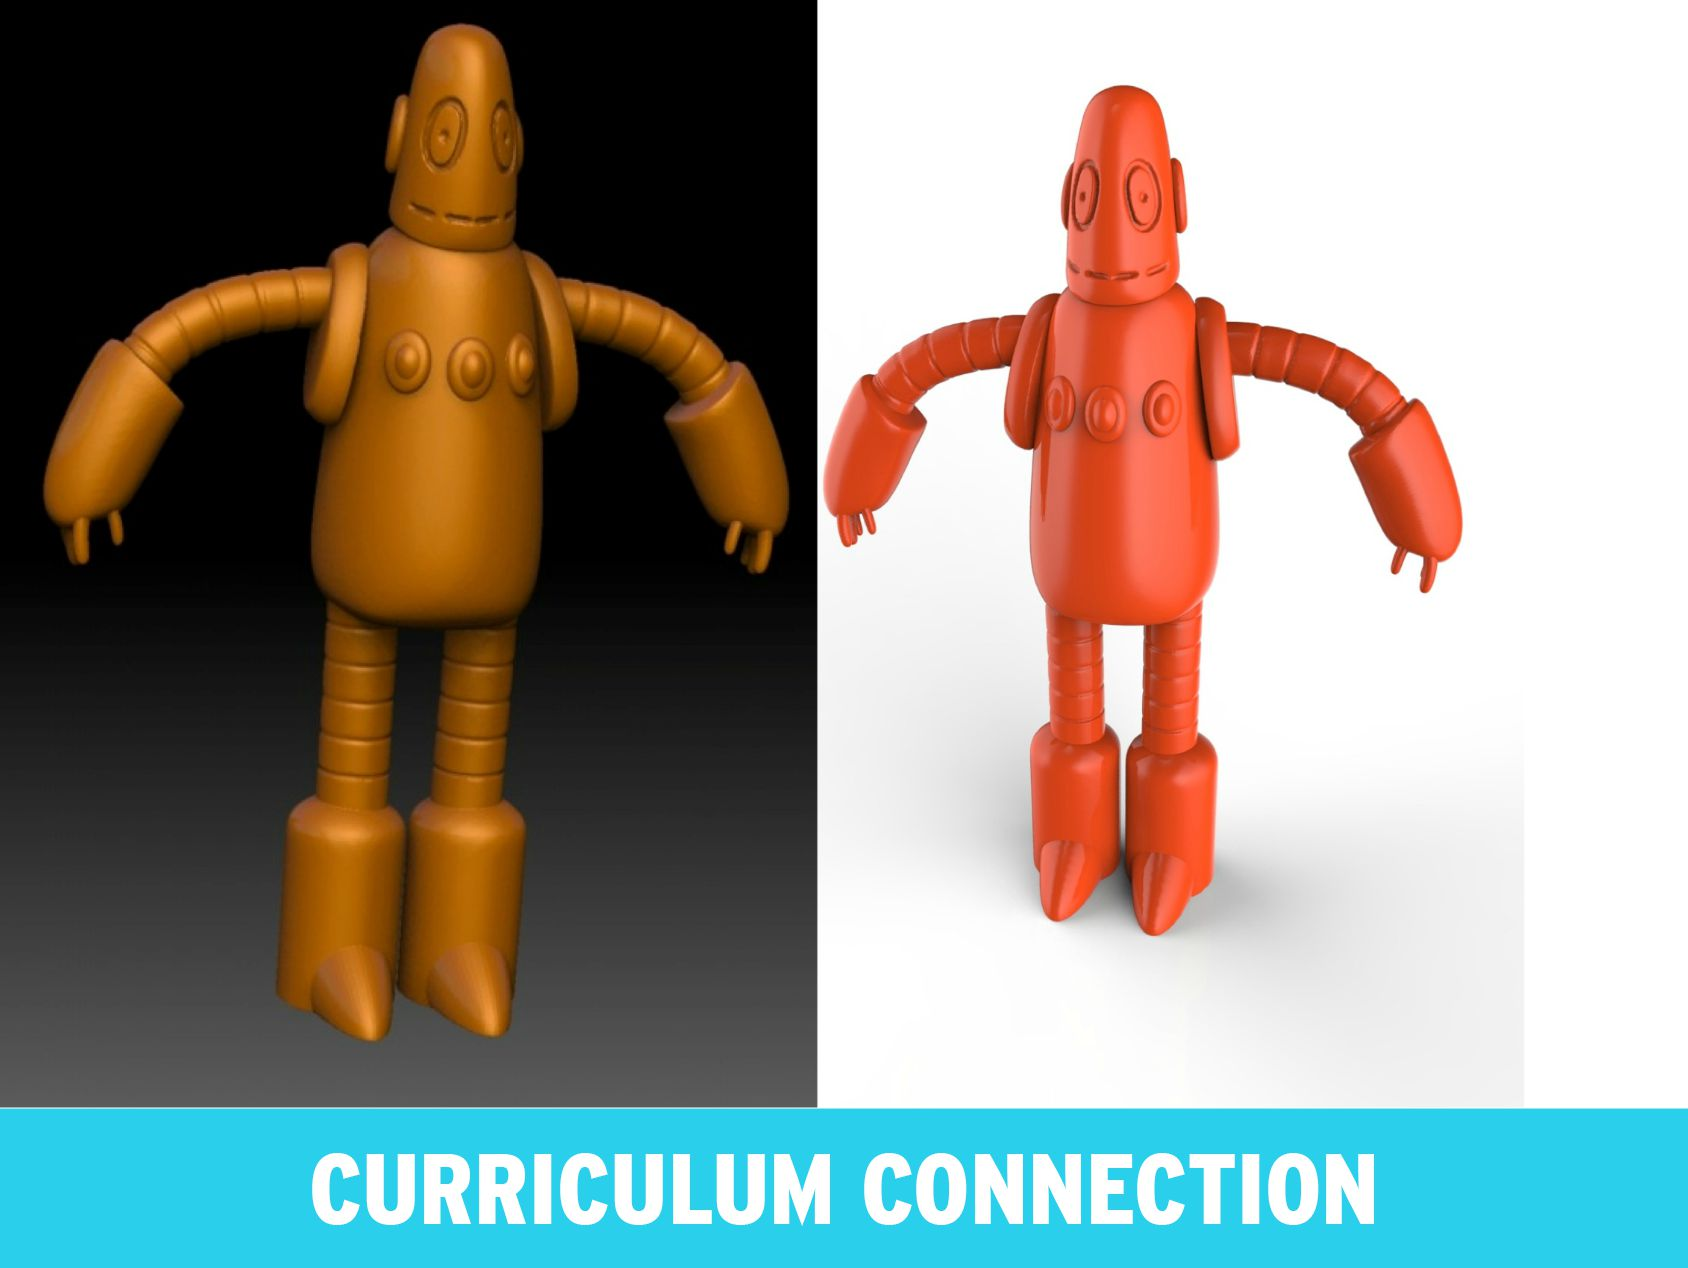 3D Robots: How This Teacher Introduced 3D Printing to Her Students